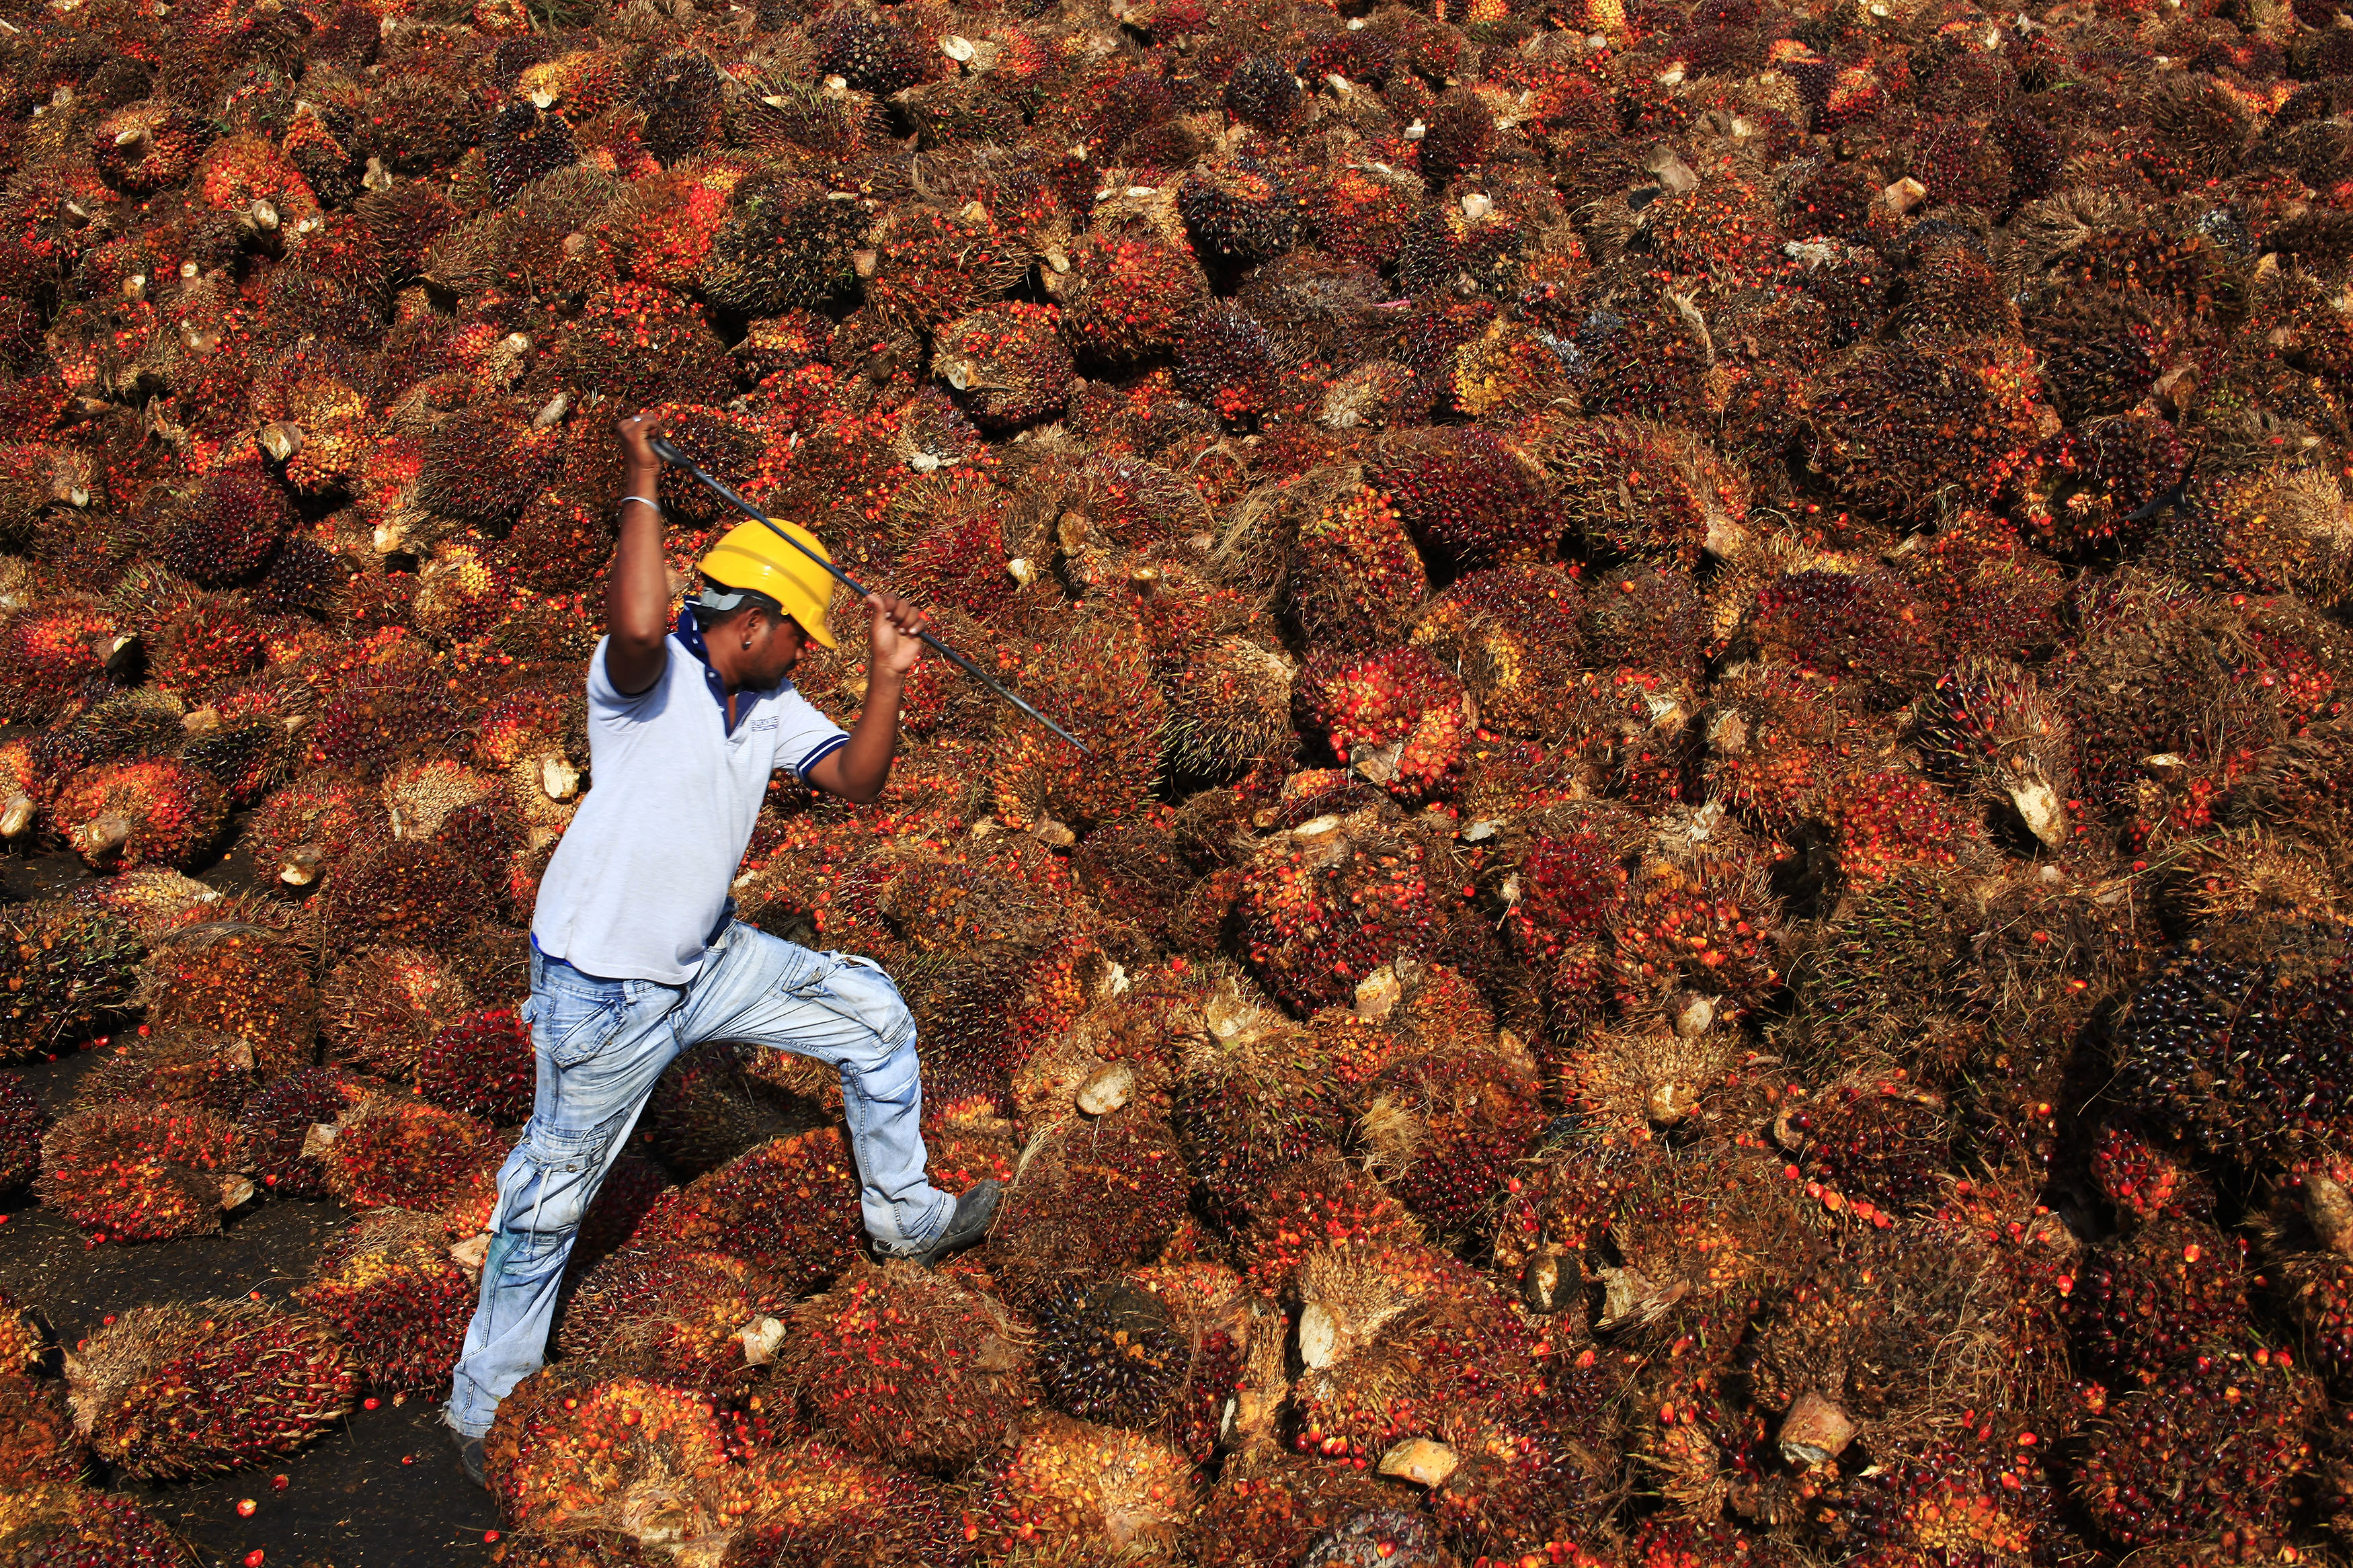 Norway's giant wealth fund decides that palm oil is terrible